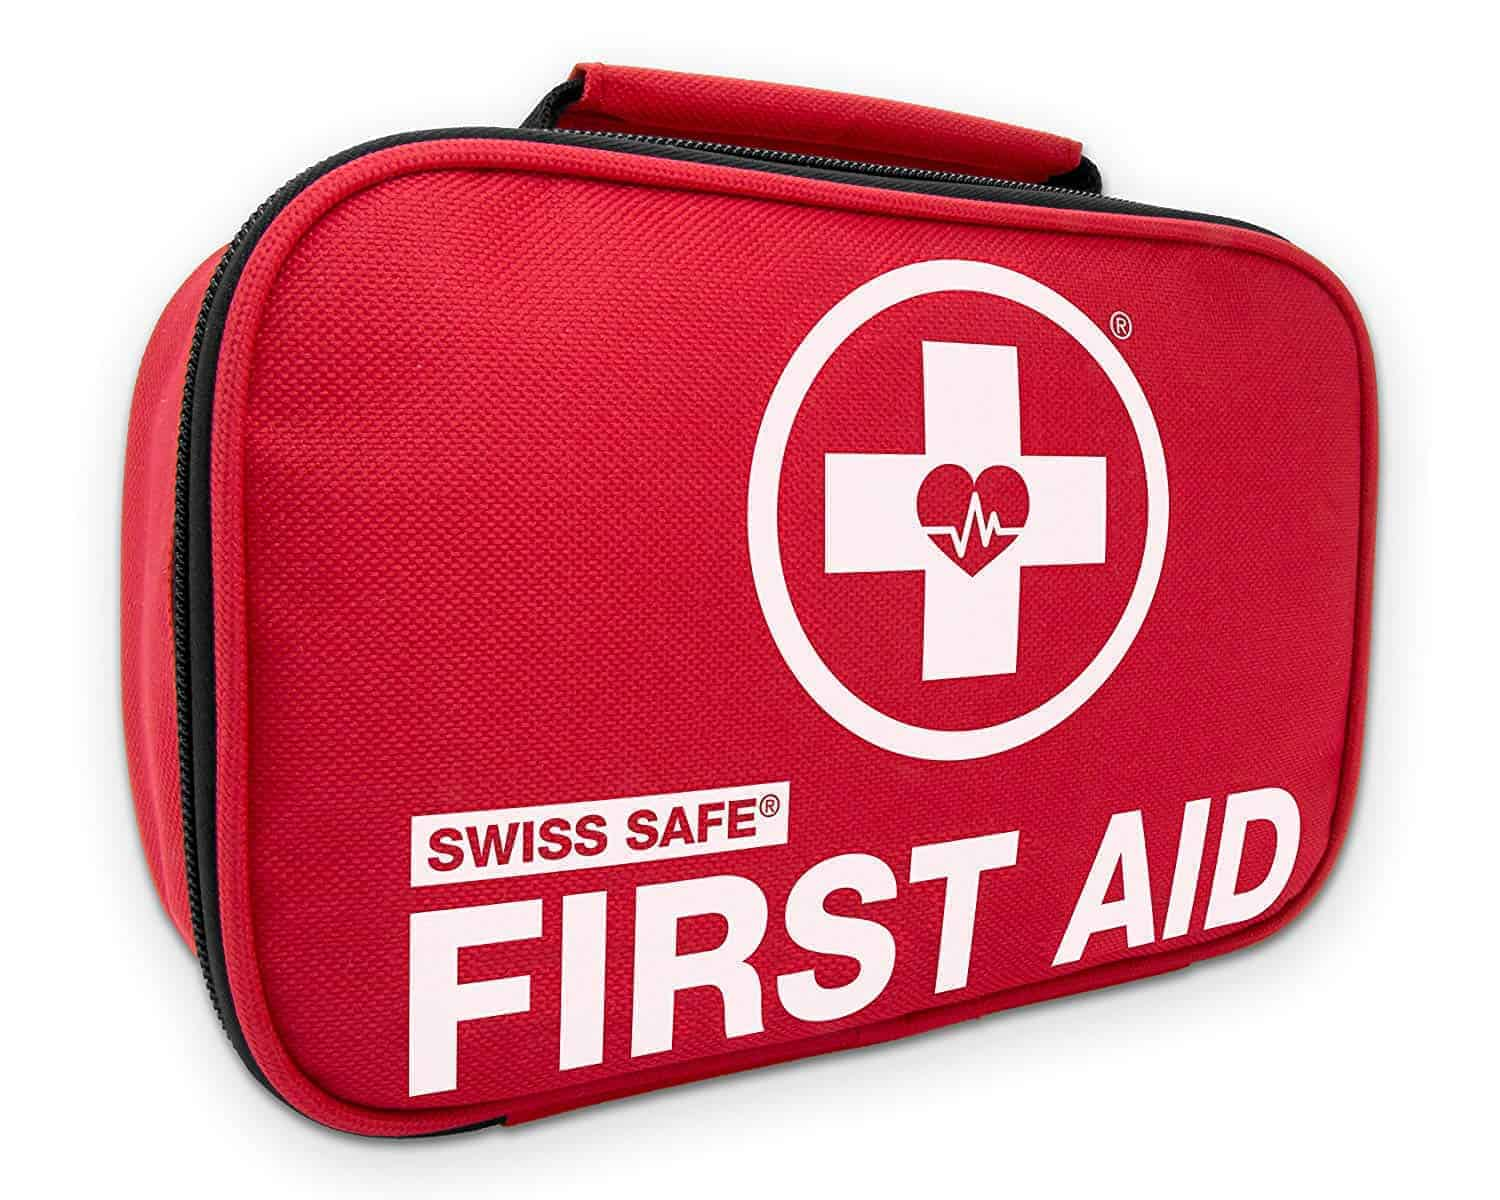 first aid kits gift idea | kimschob.com